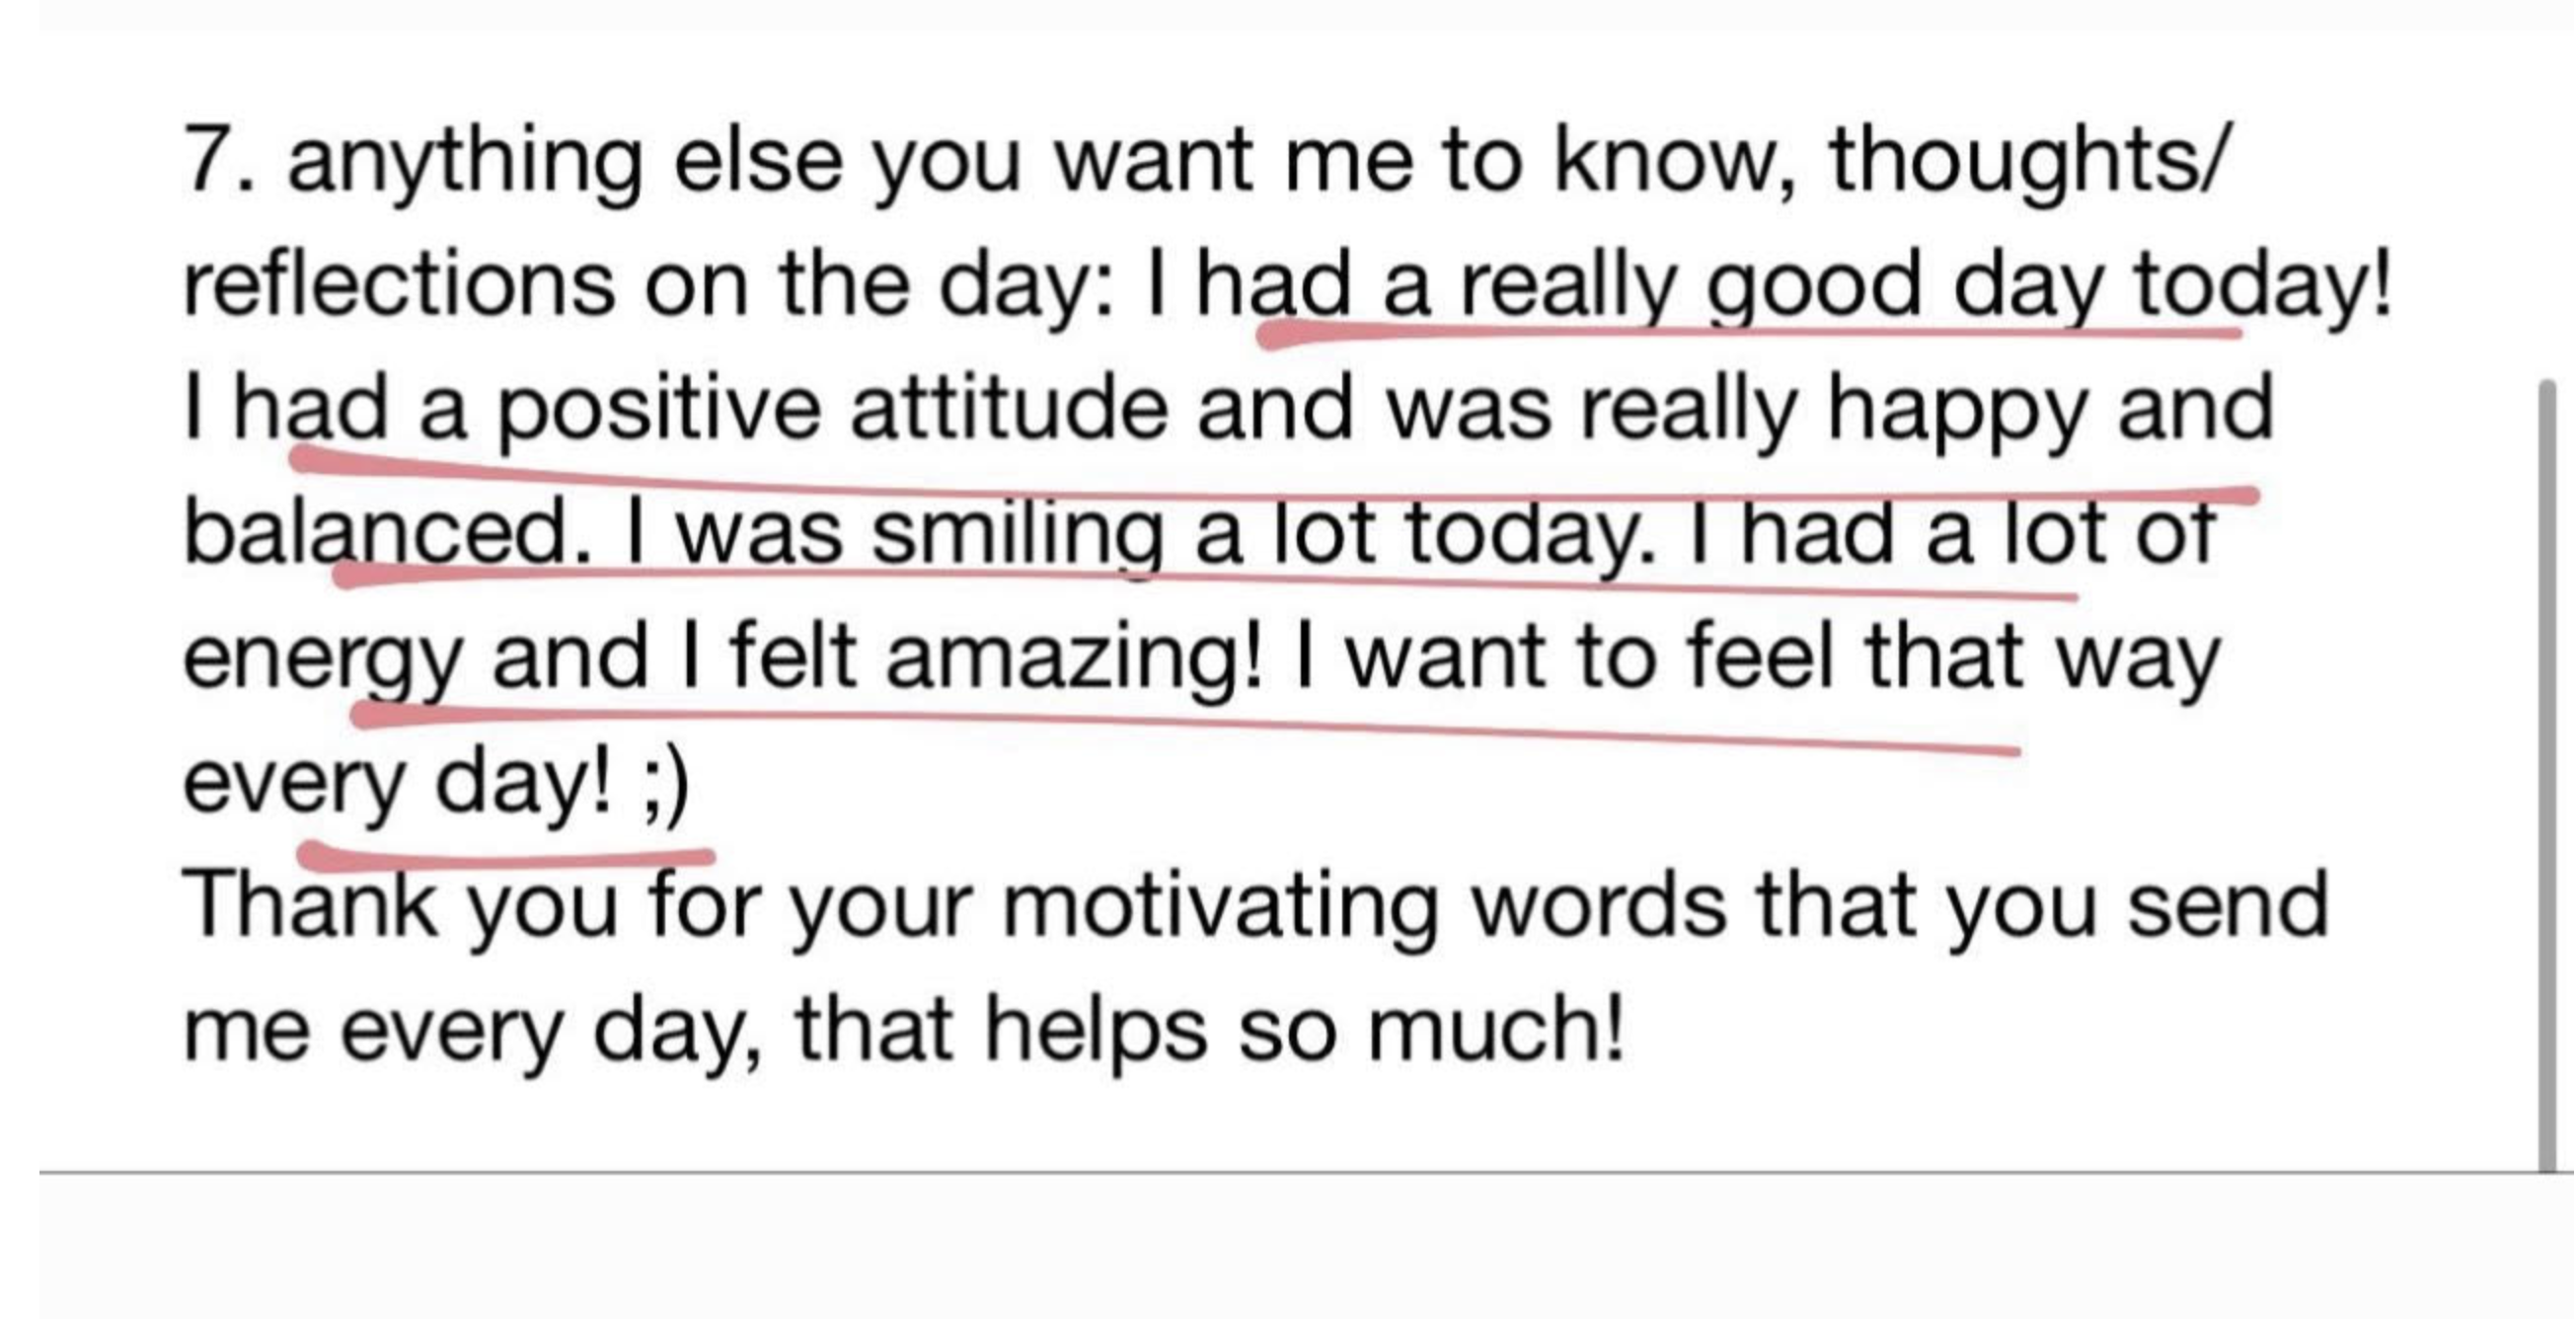 This Girl Audra - Testimonial: I had a really good day today! I had a positive attitude and was really happy and balanced. I was smiling a lot tofay. I had a lot of energy and I felt amazing! I want to feel that way every day! ;) Thank you for your motivating words that you send me every day, that helps so much!